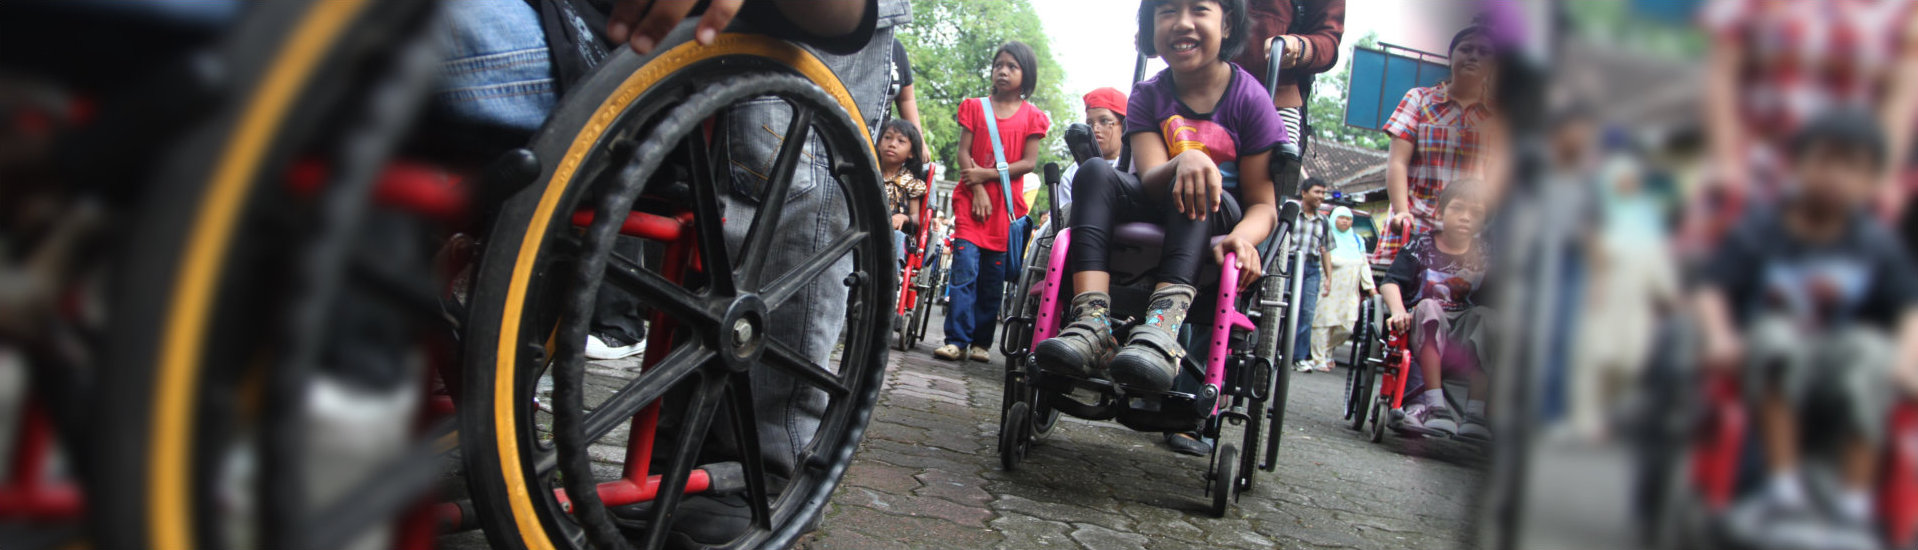 kids on their wheelchair